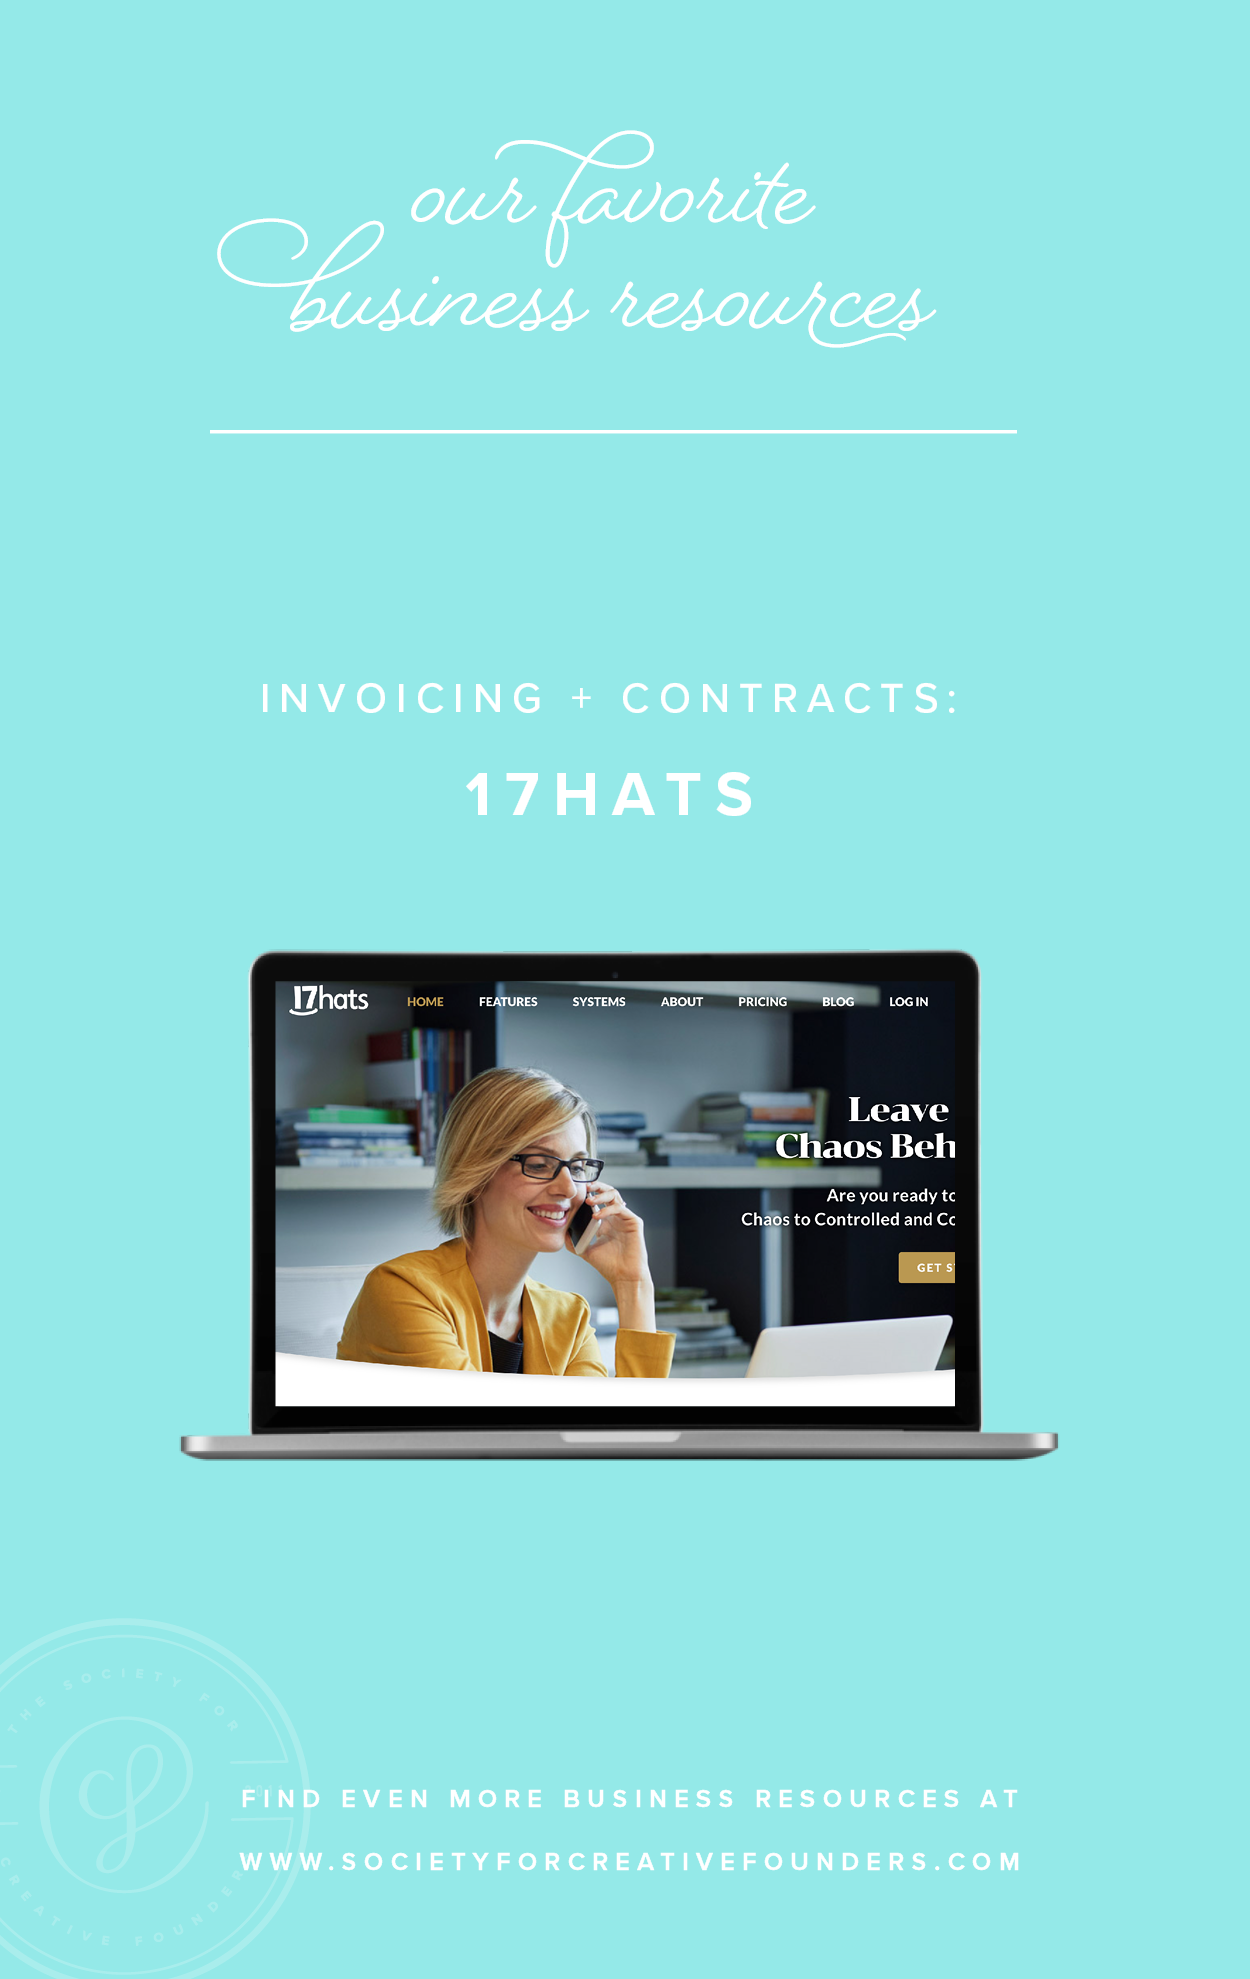 17 HATS FOR Product and Service Providers